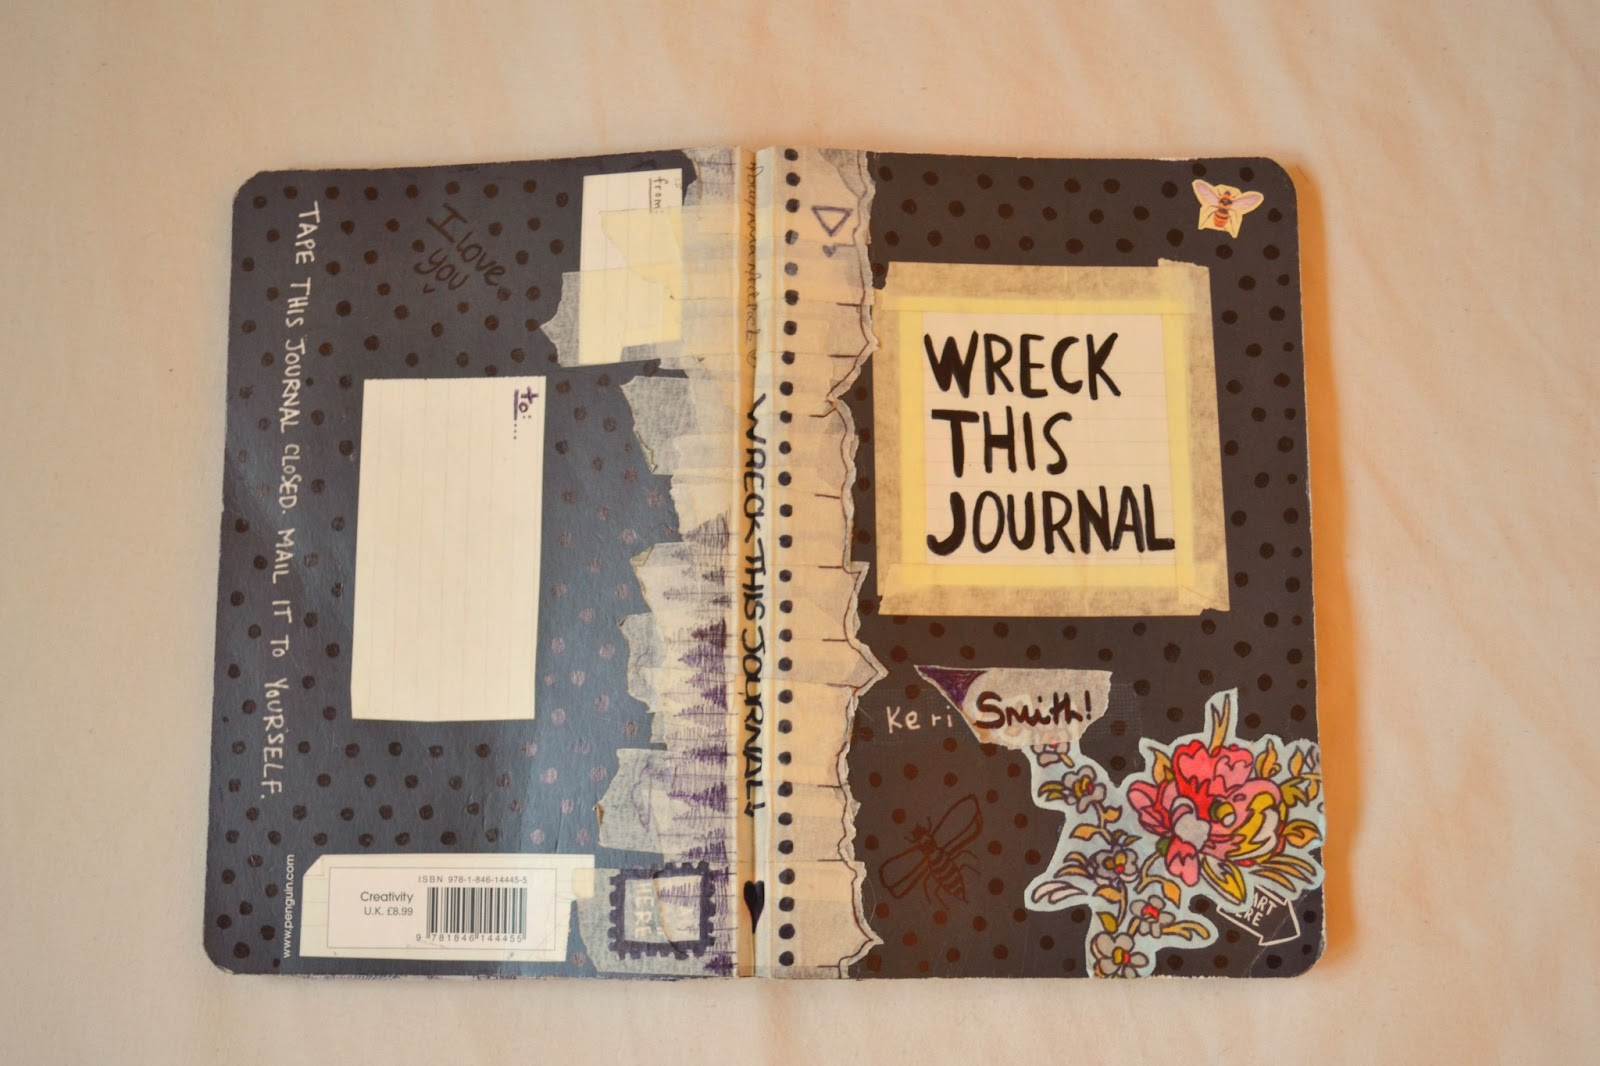 Wreck this journal своими руками